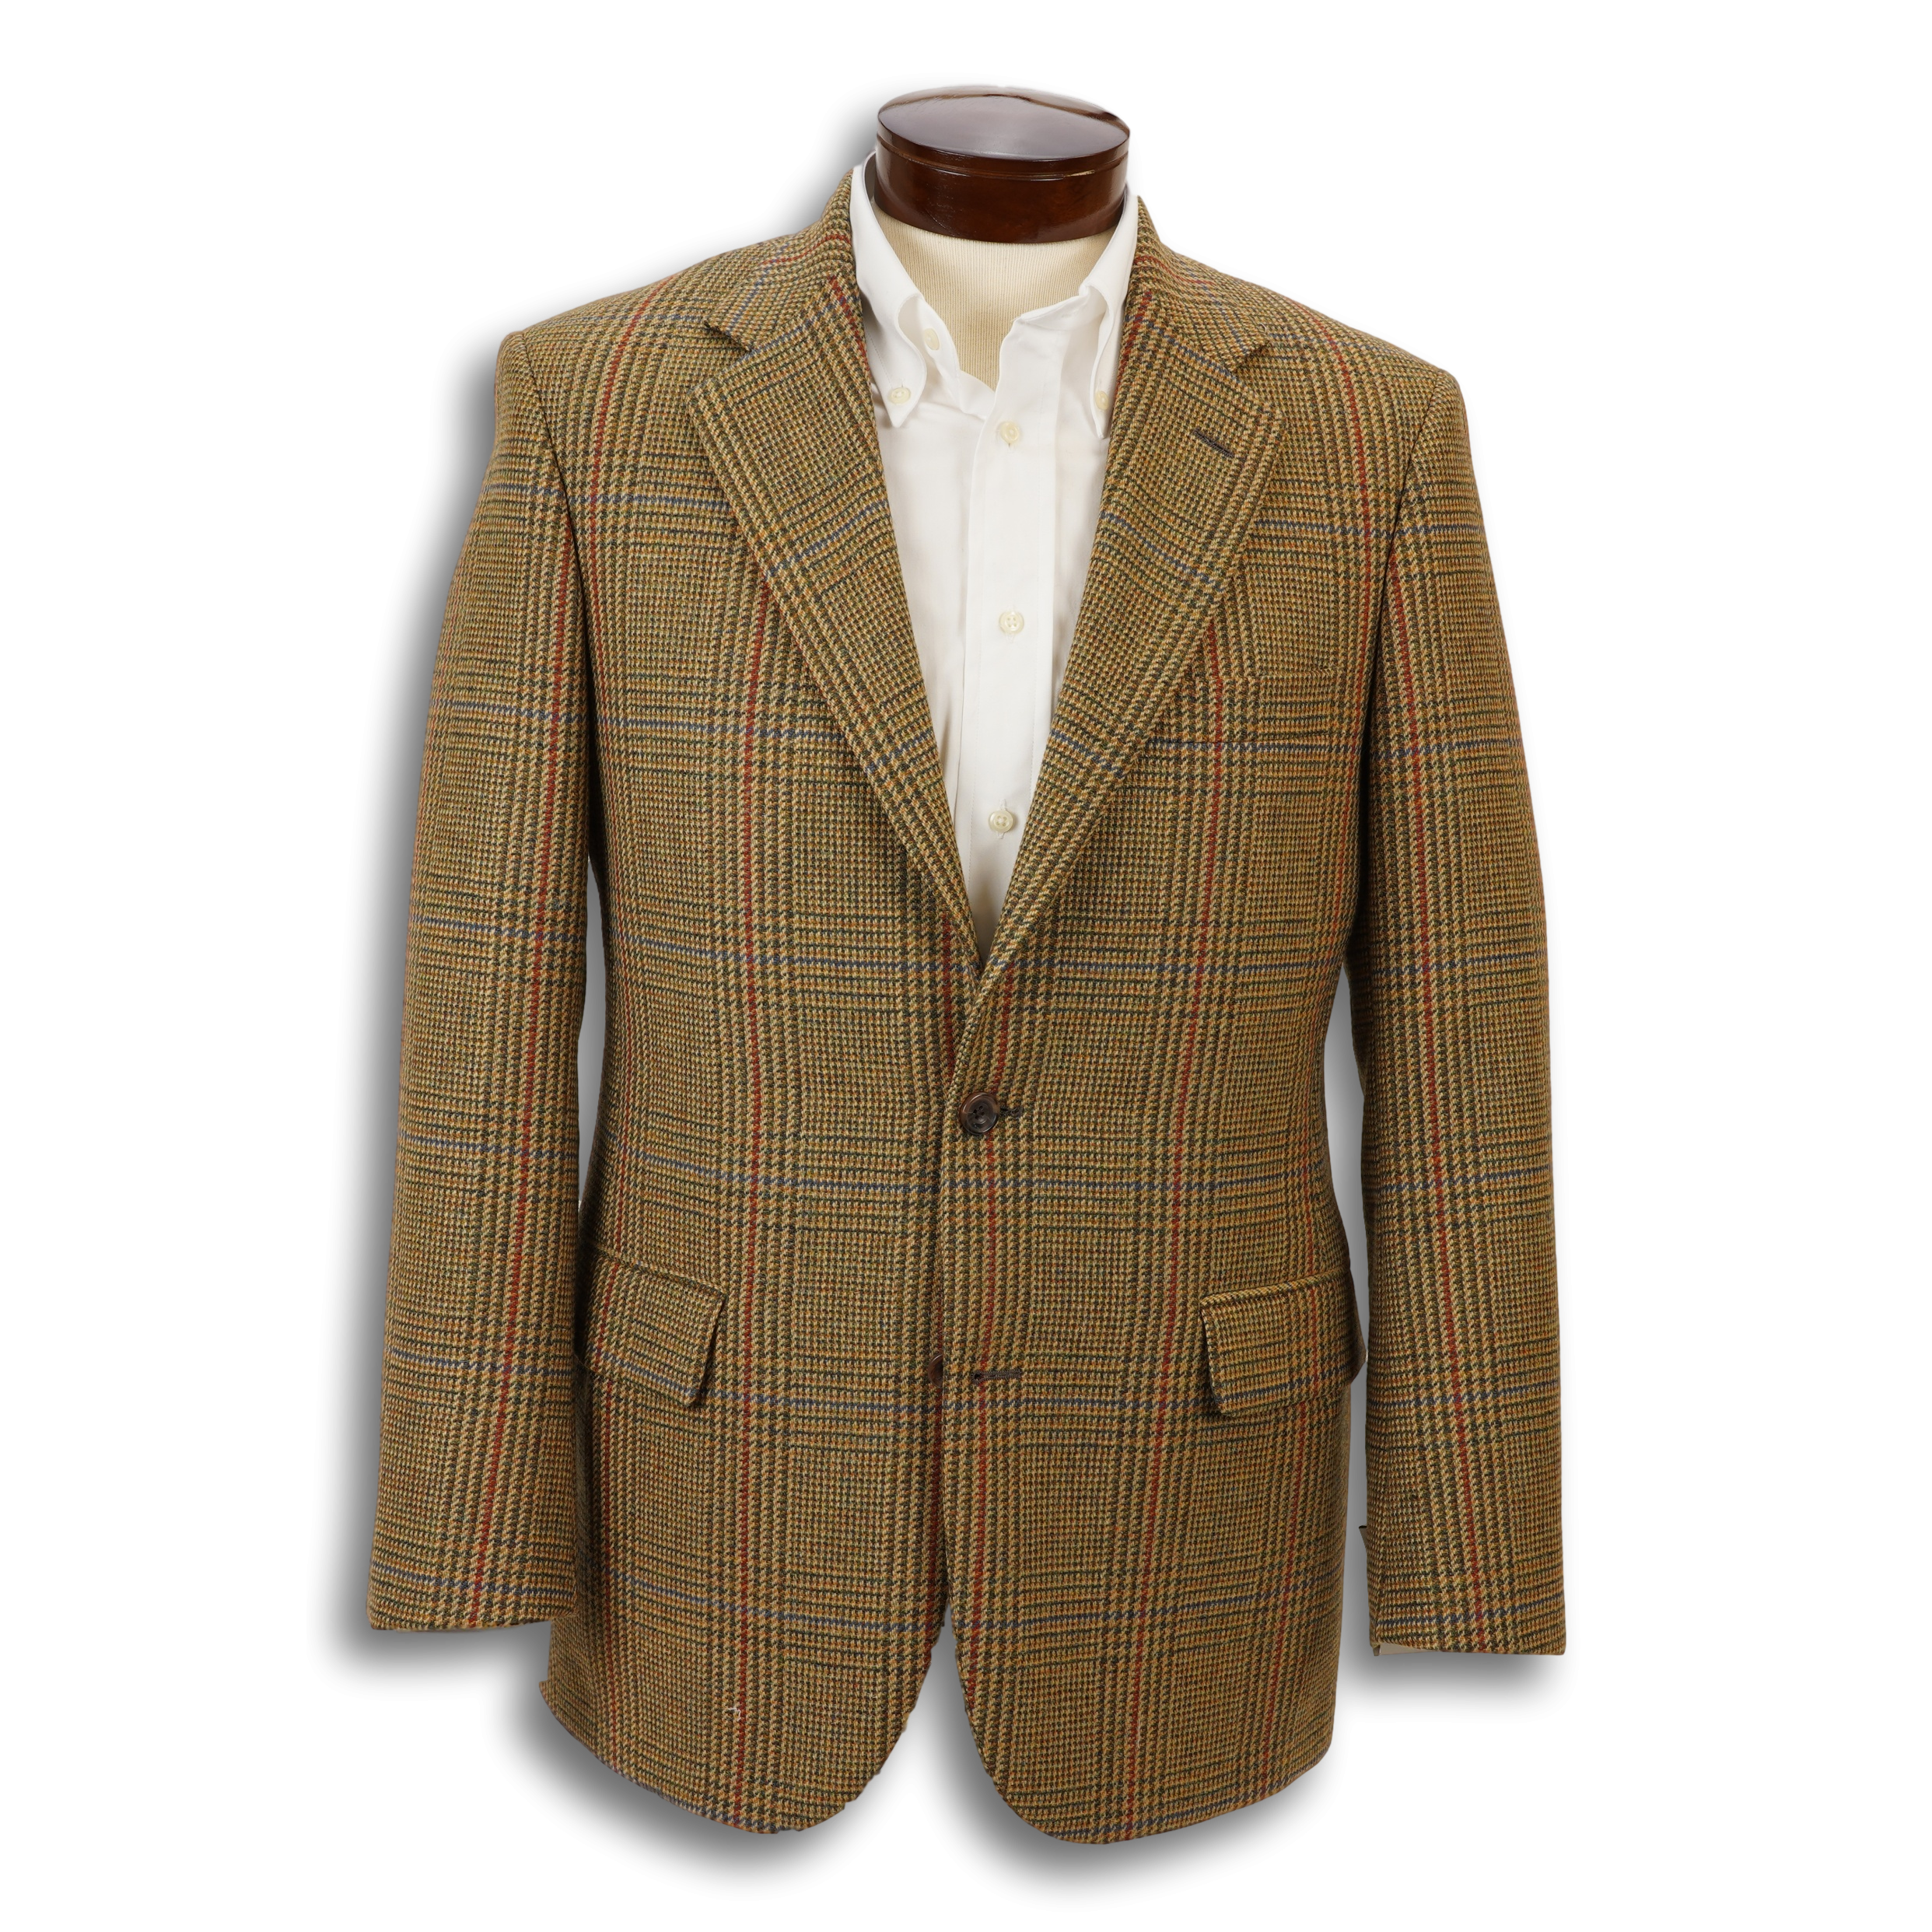 Tan Glen Plaid with Olive, Blue, and Brick Red Windowpane Jacket